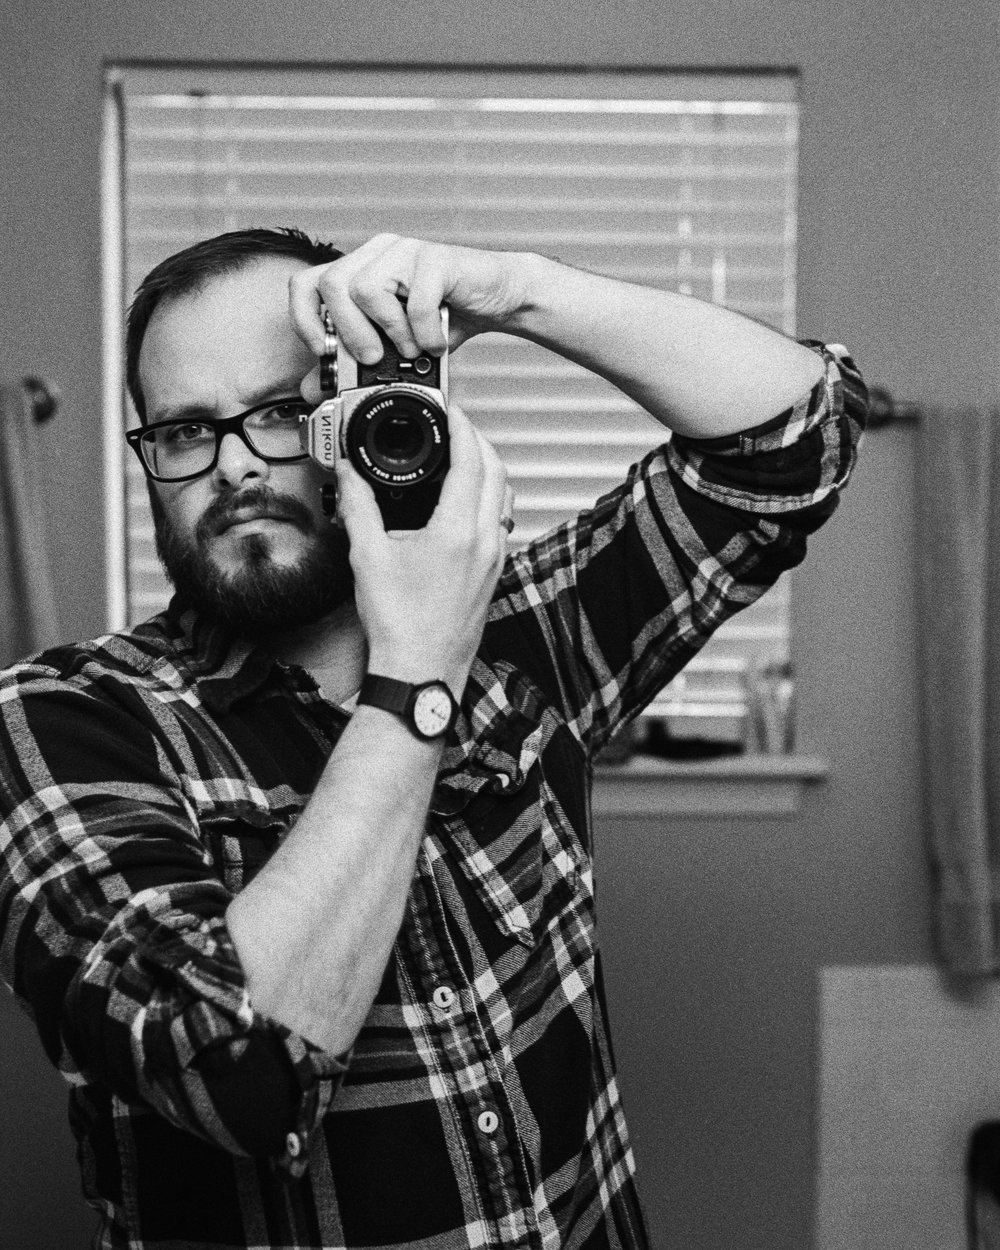 Self-portrait, Nikon FM, Kodak Tri-X 400 at 1600, developed in 1:50 Rodinal